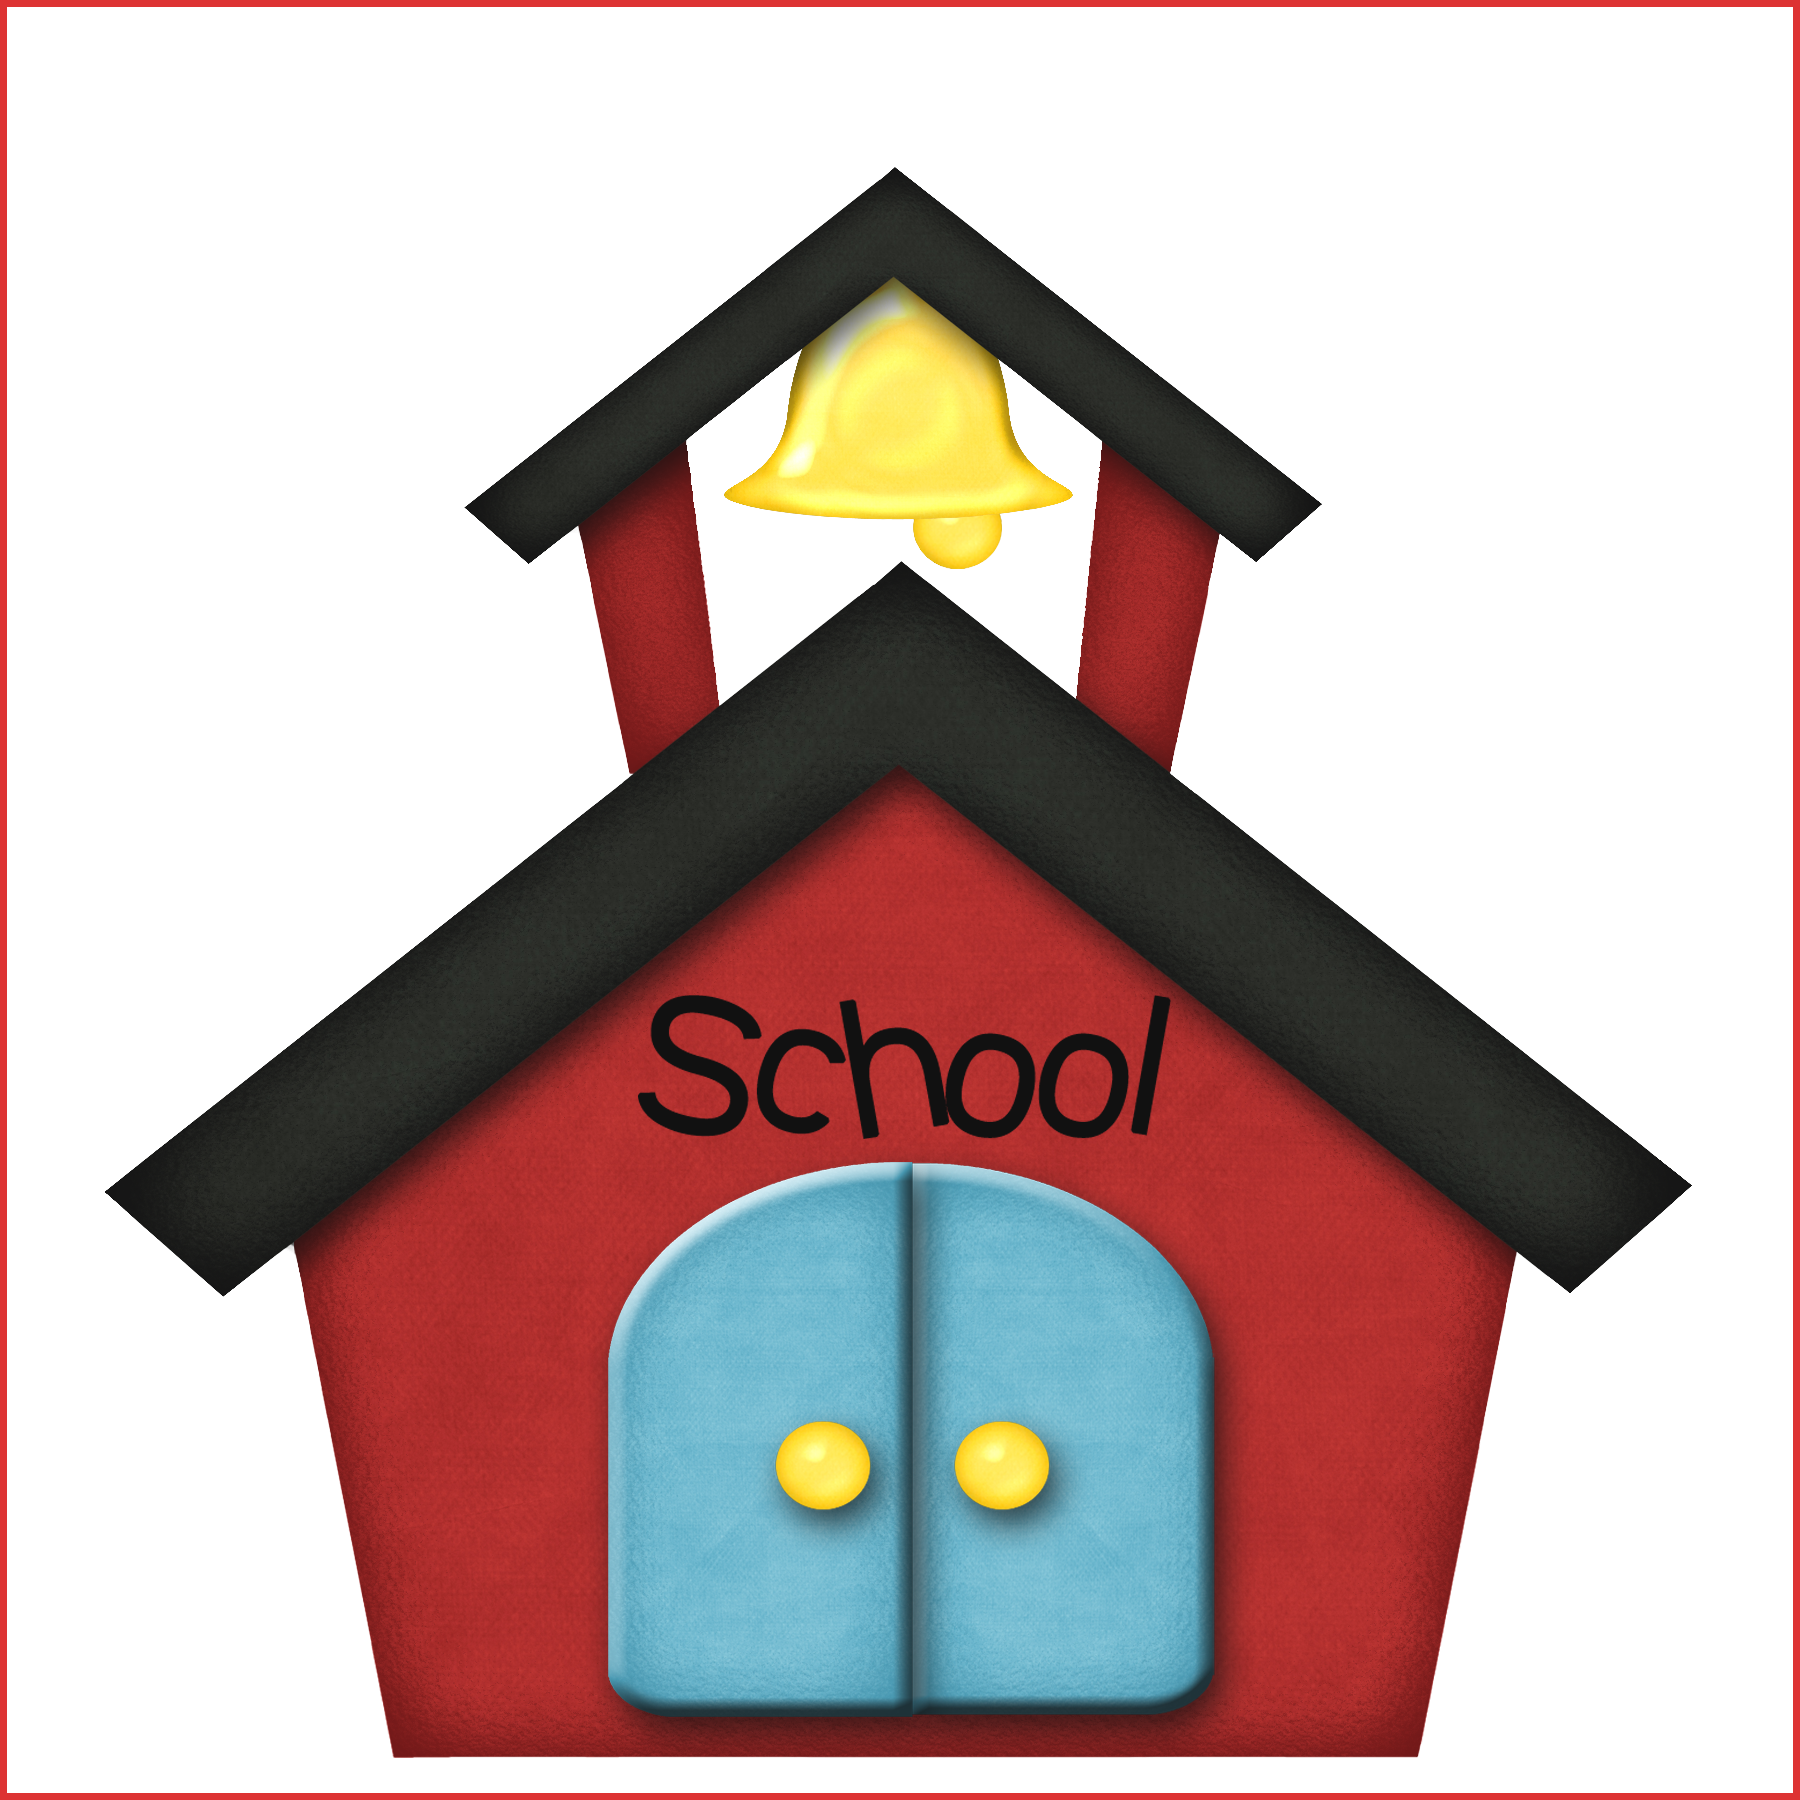 Old fashioned school house clipart image free stock School House Clipart at GetDrawings.com | Free for personal use ... image free stock